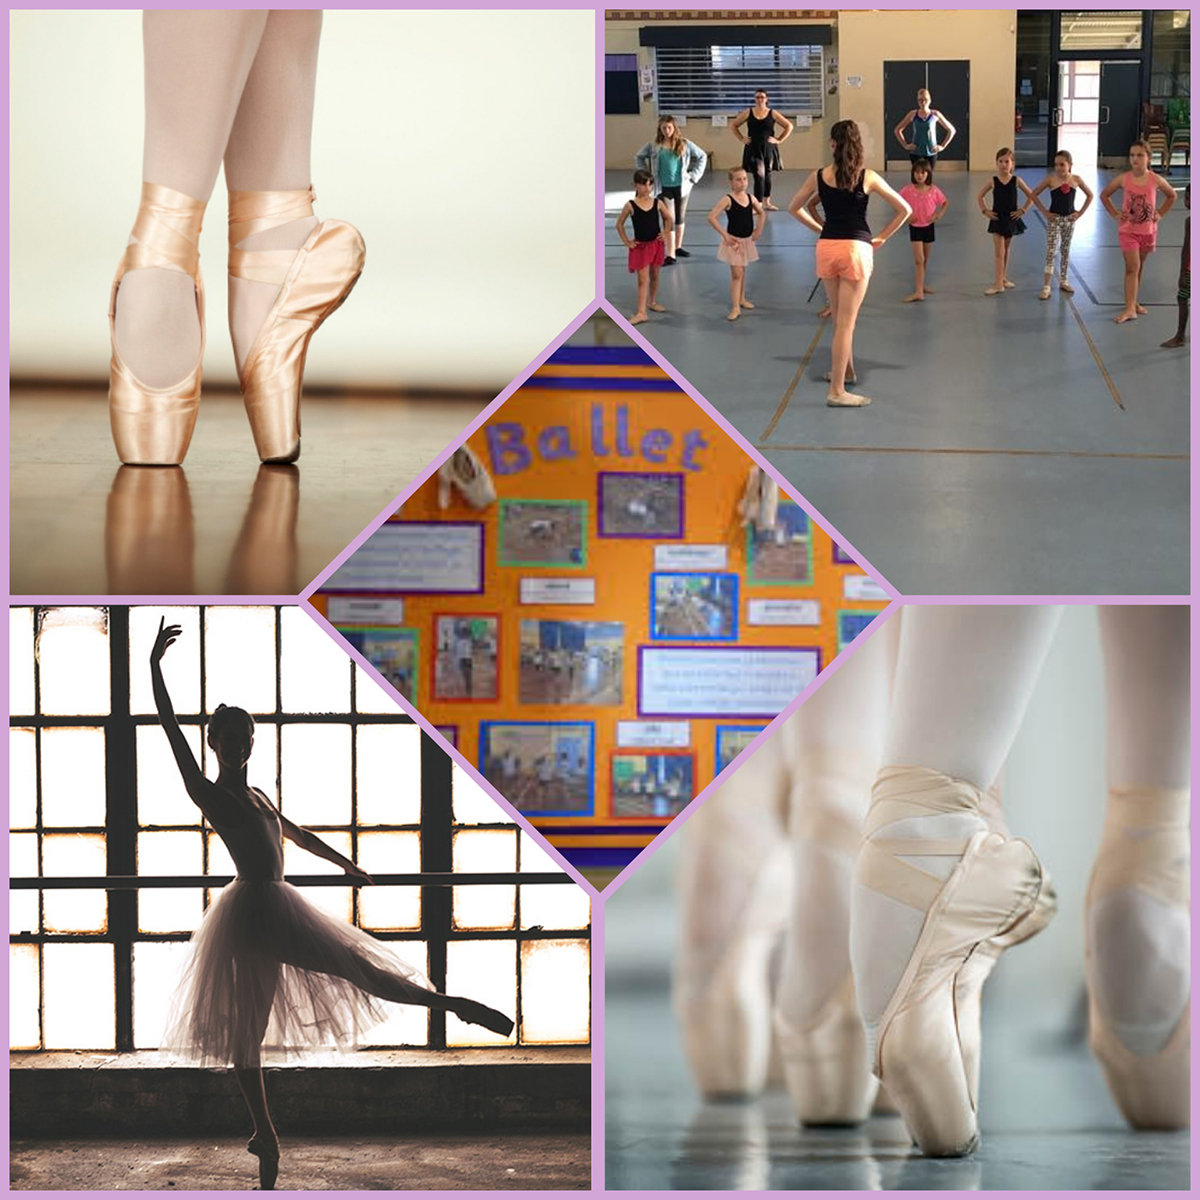 school ballet activities london